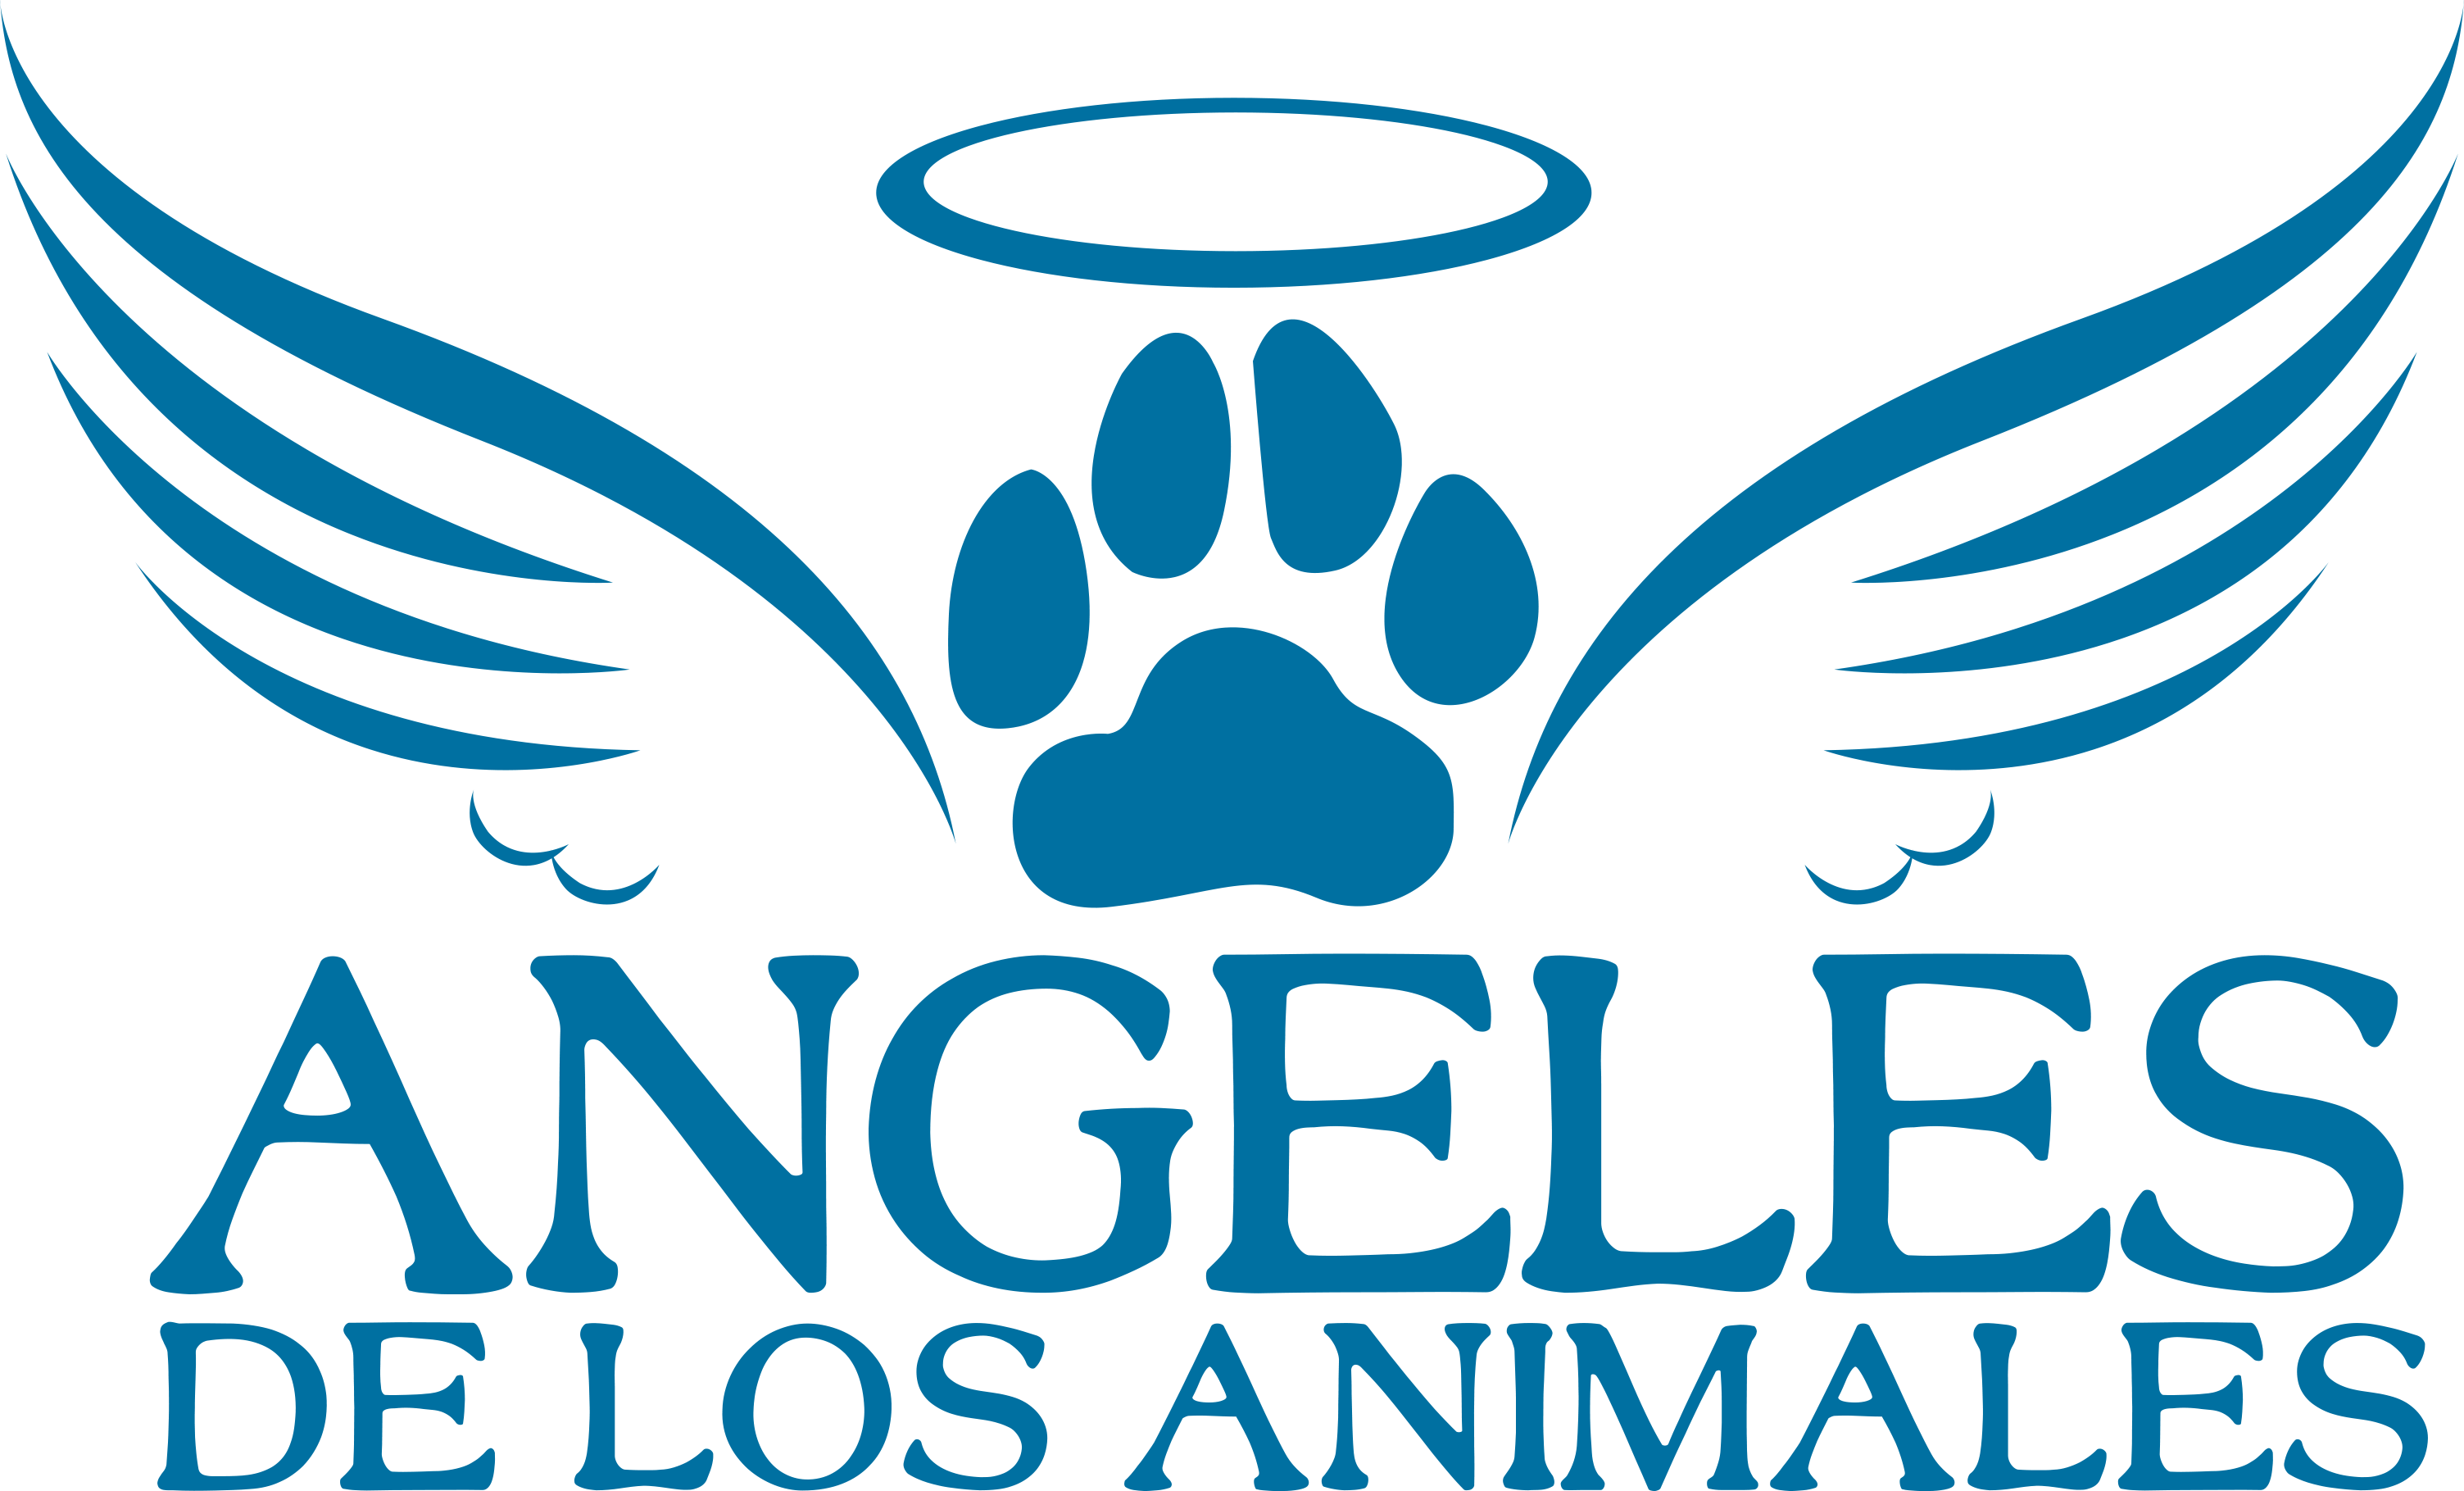 Angeles de los Animales